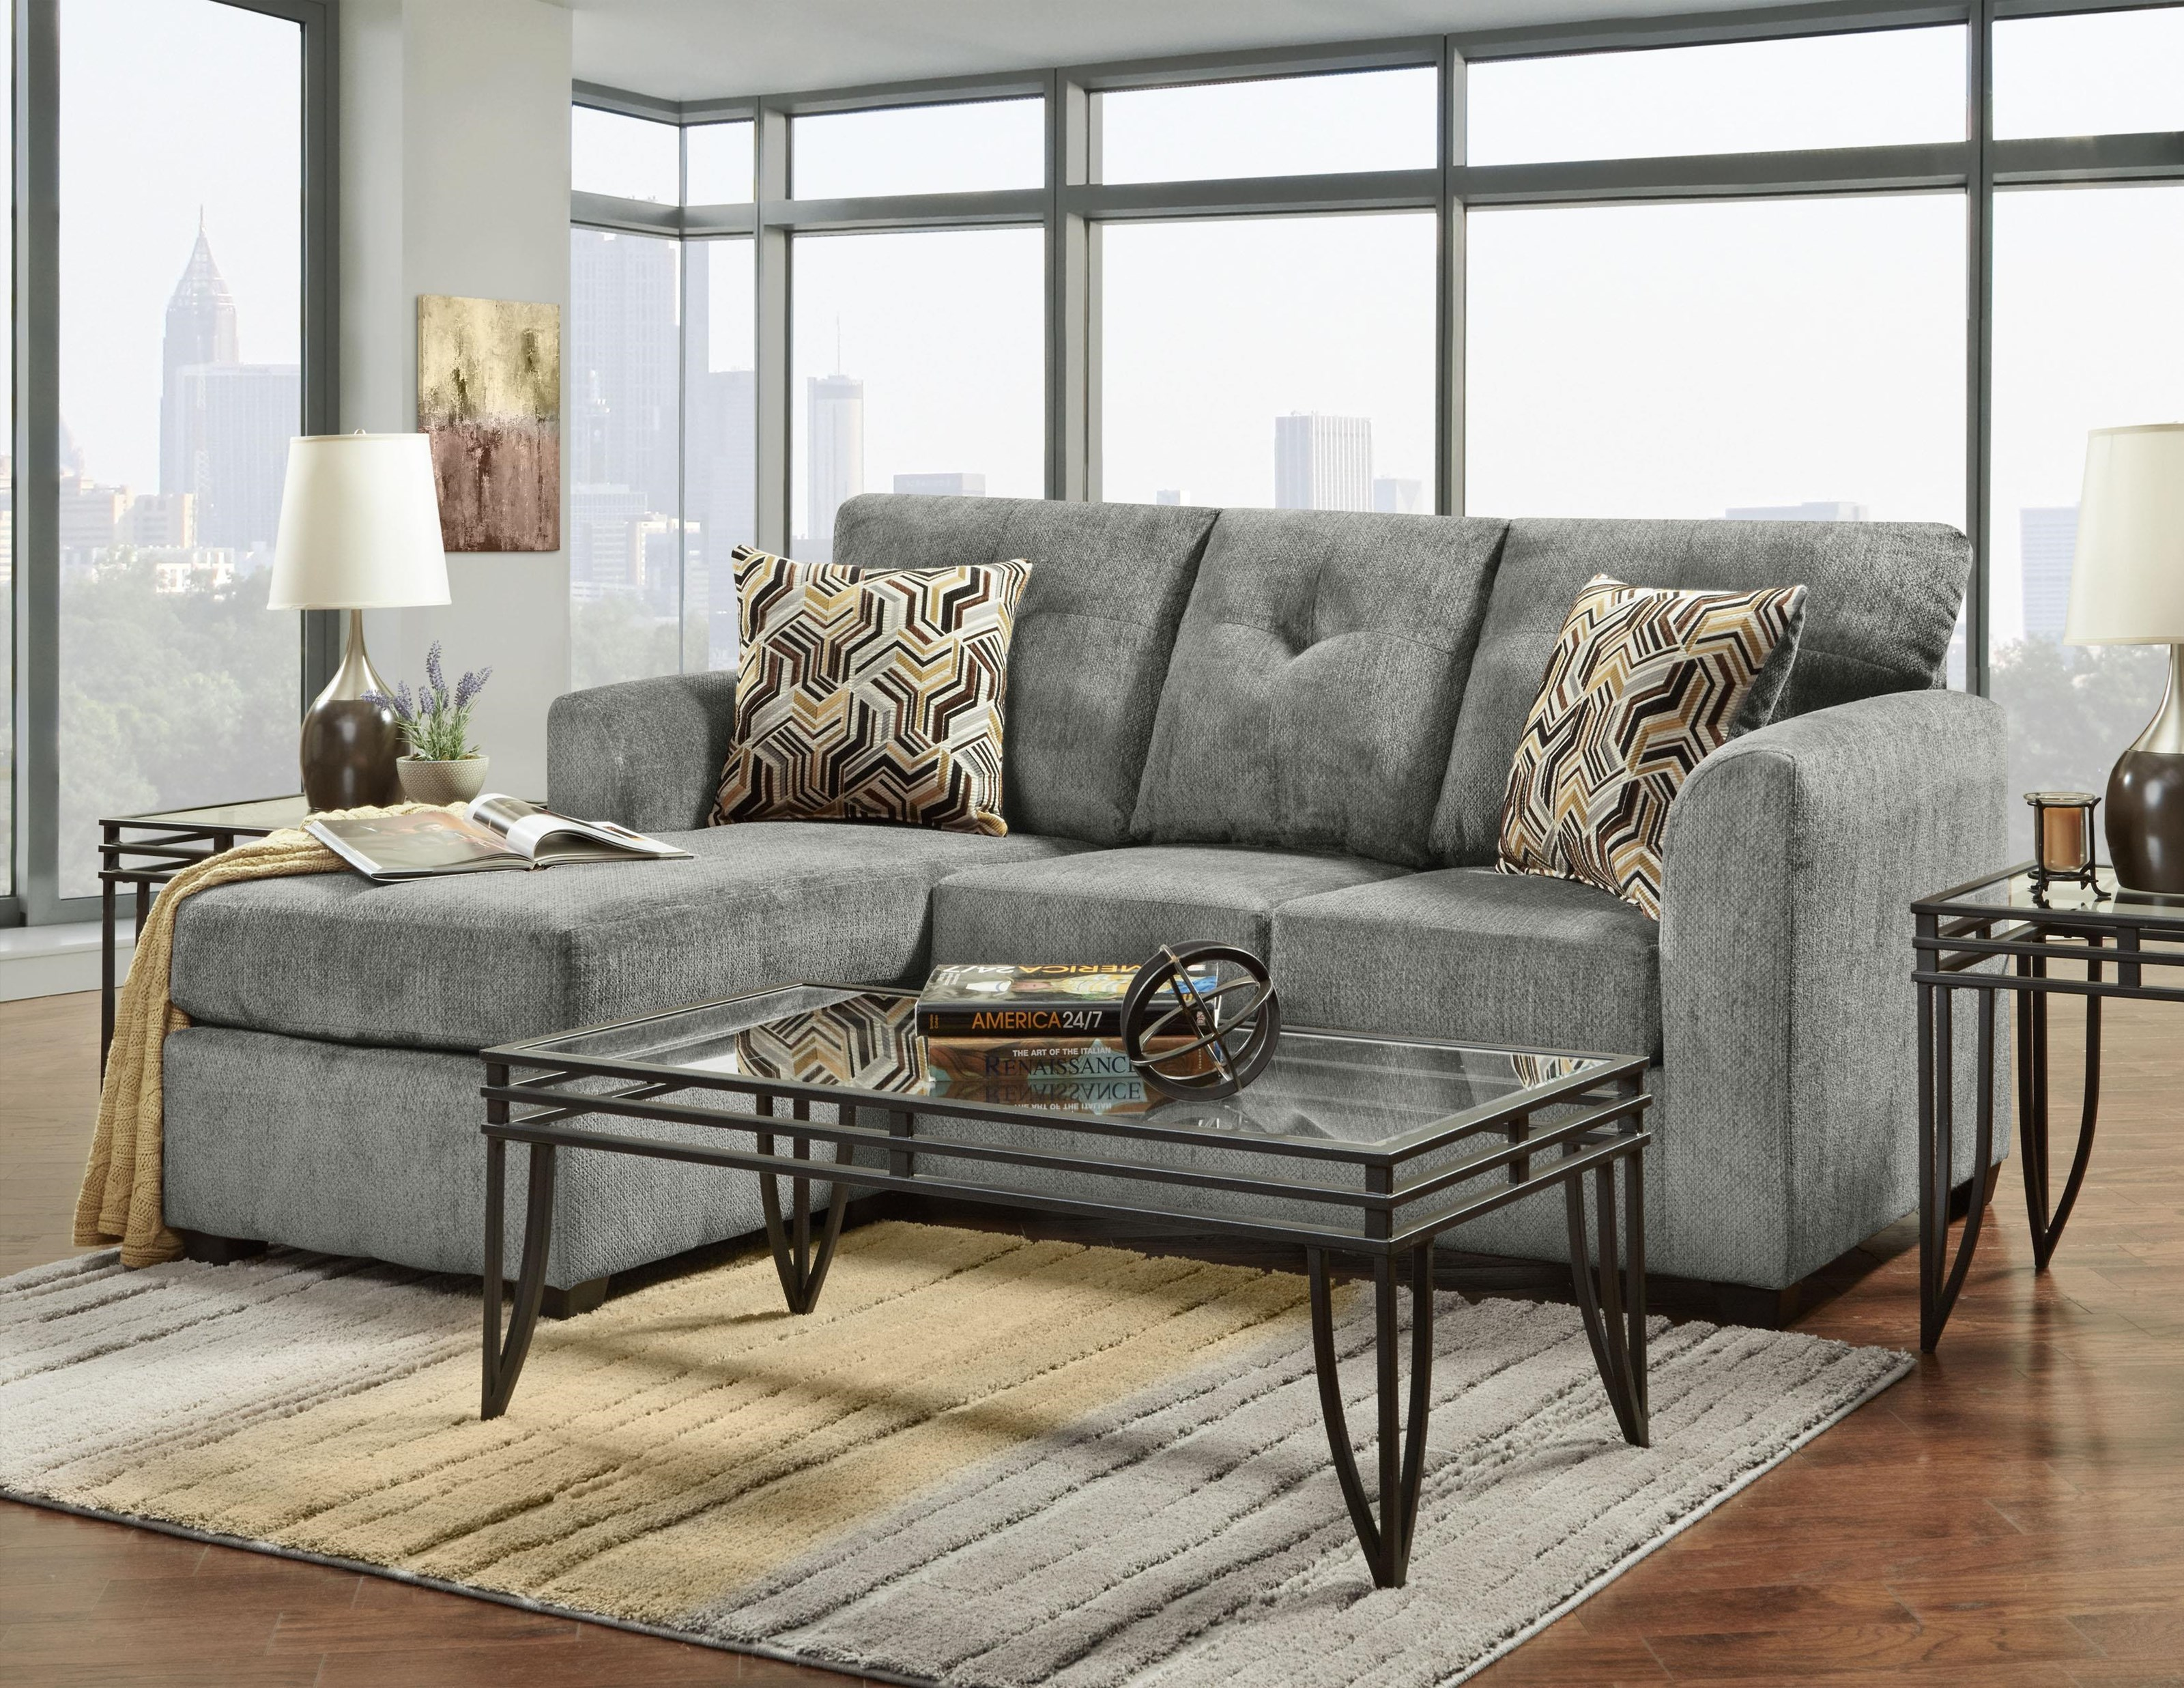 3900 Sofa Chaise by Washington Furniture at VanDrie Home Furnishings